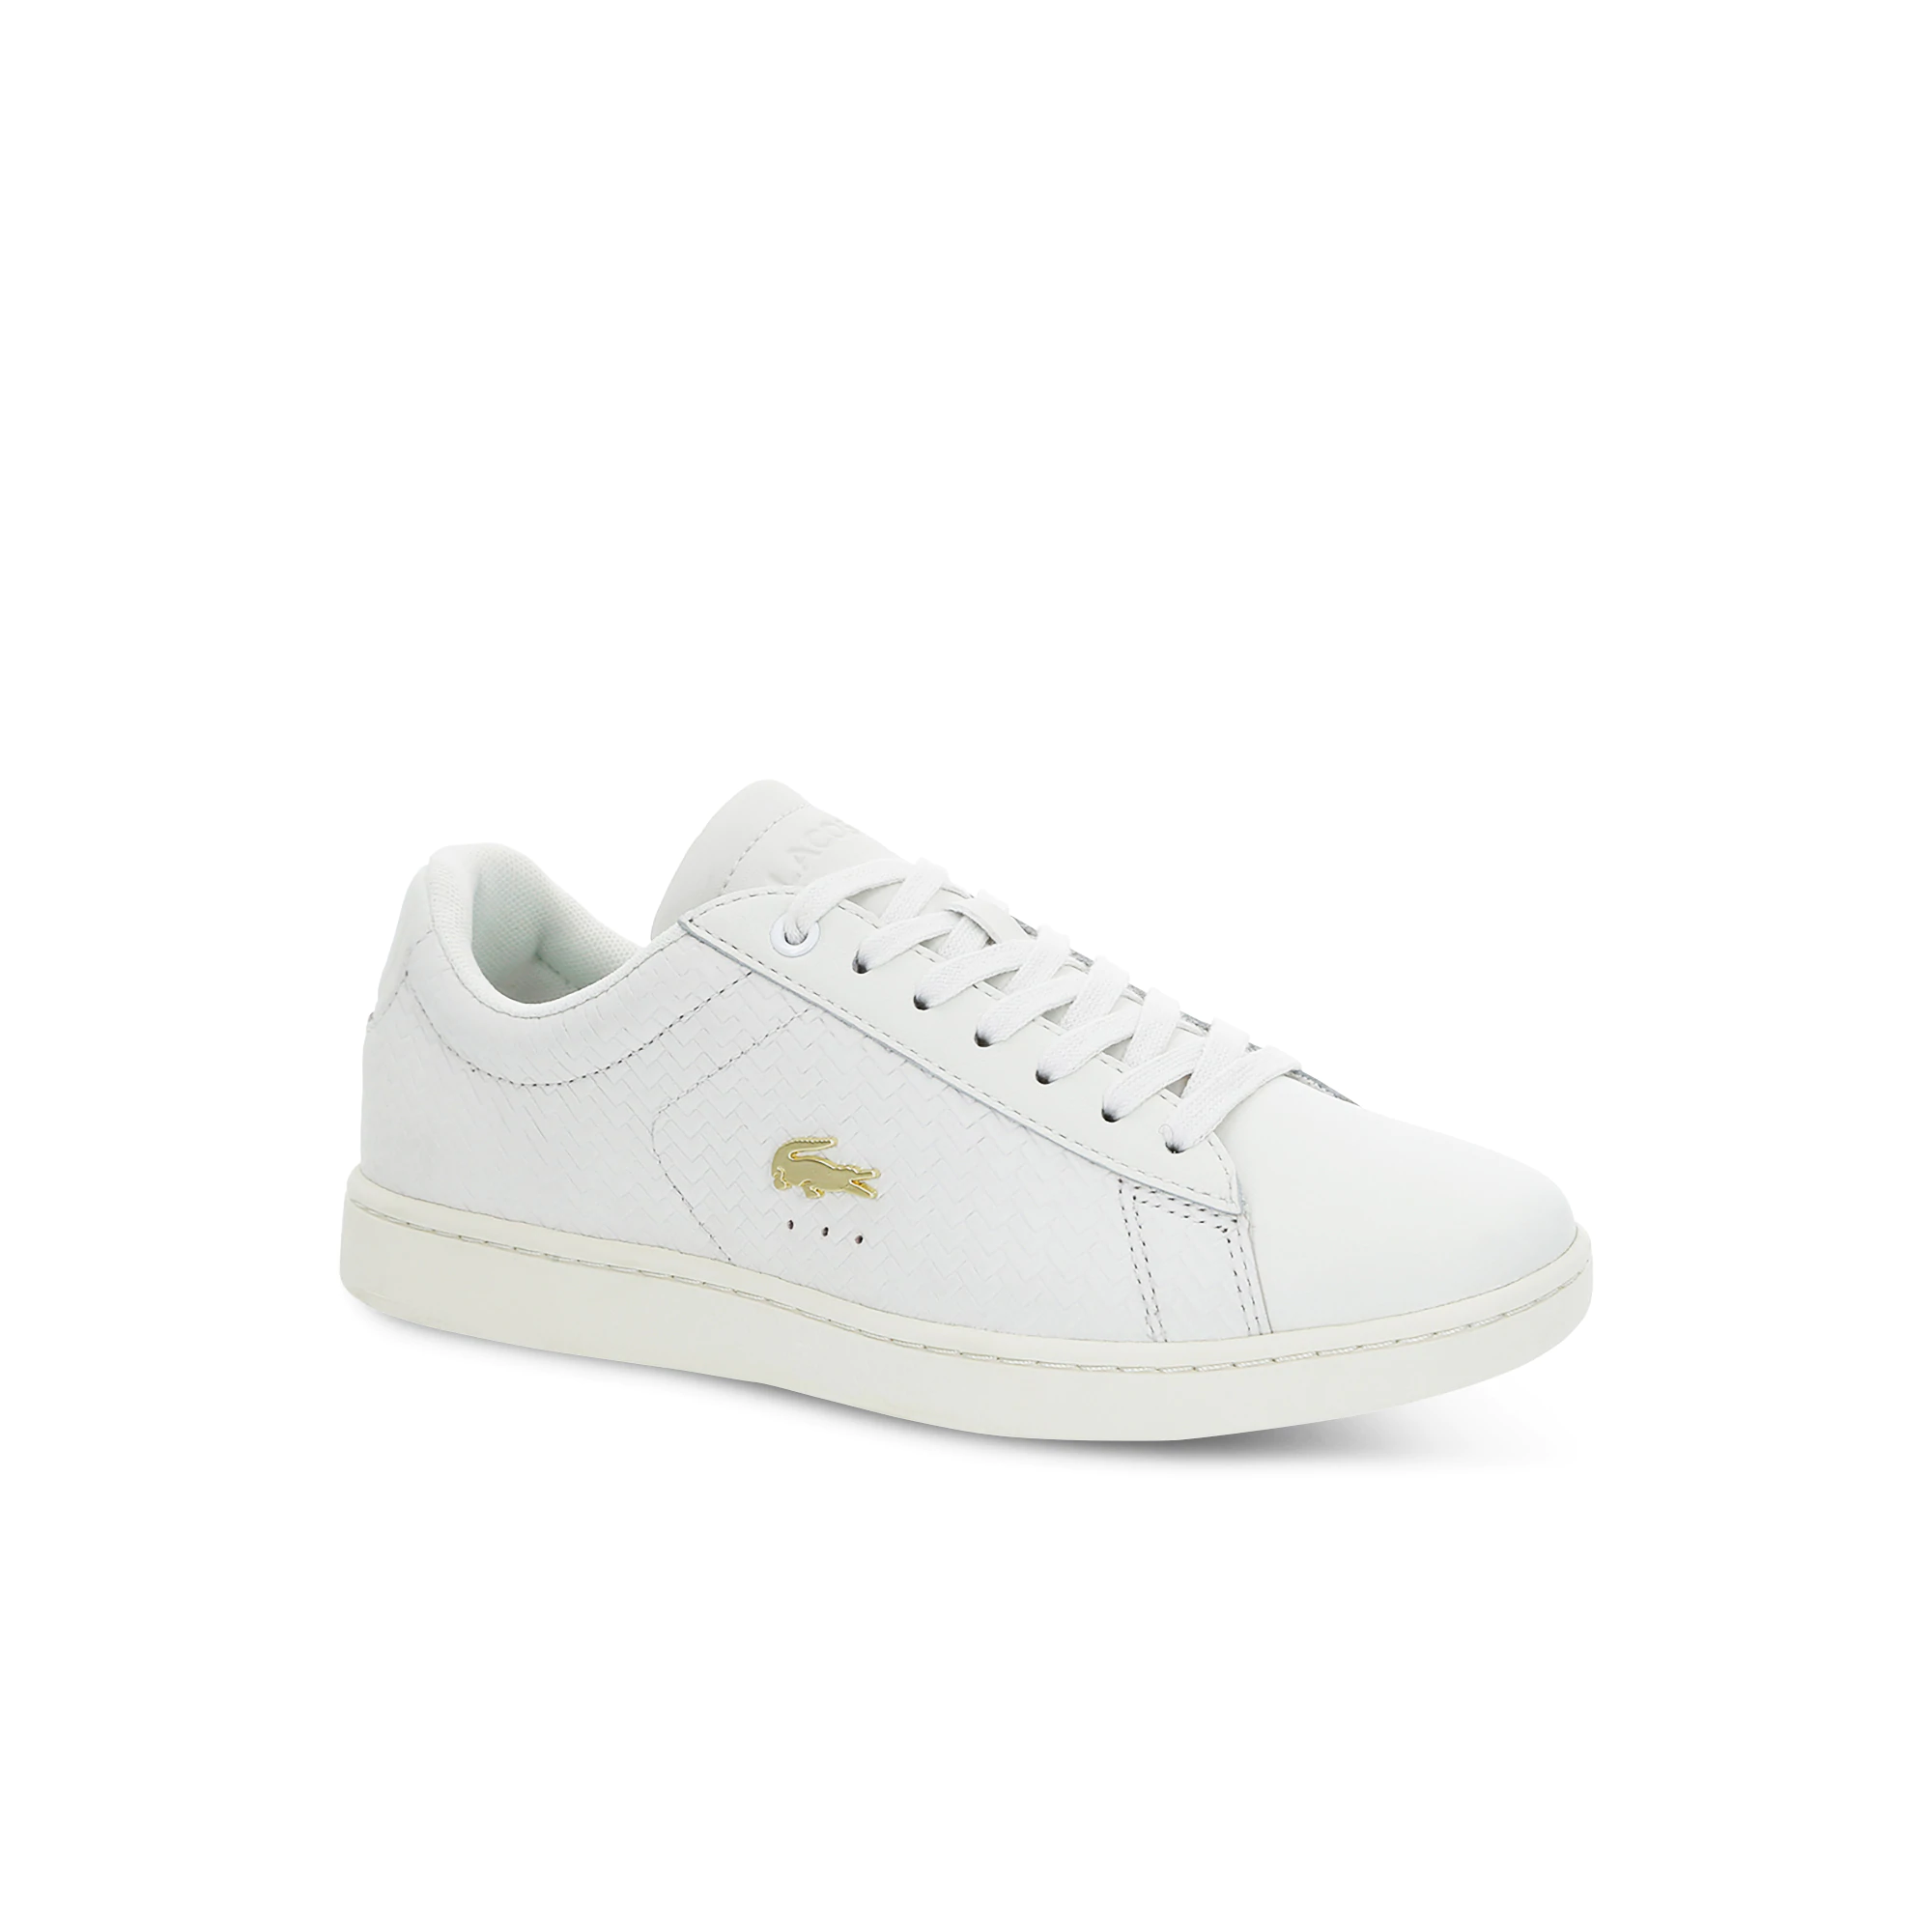 Lacoste Women's Carnaby Evo Textured Leather Trainers 37SFA0013-18C Wh